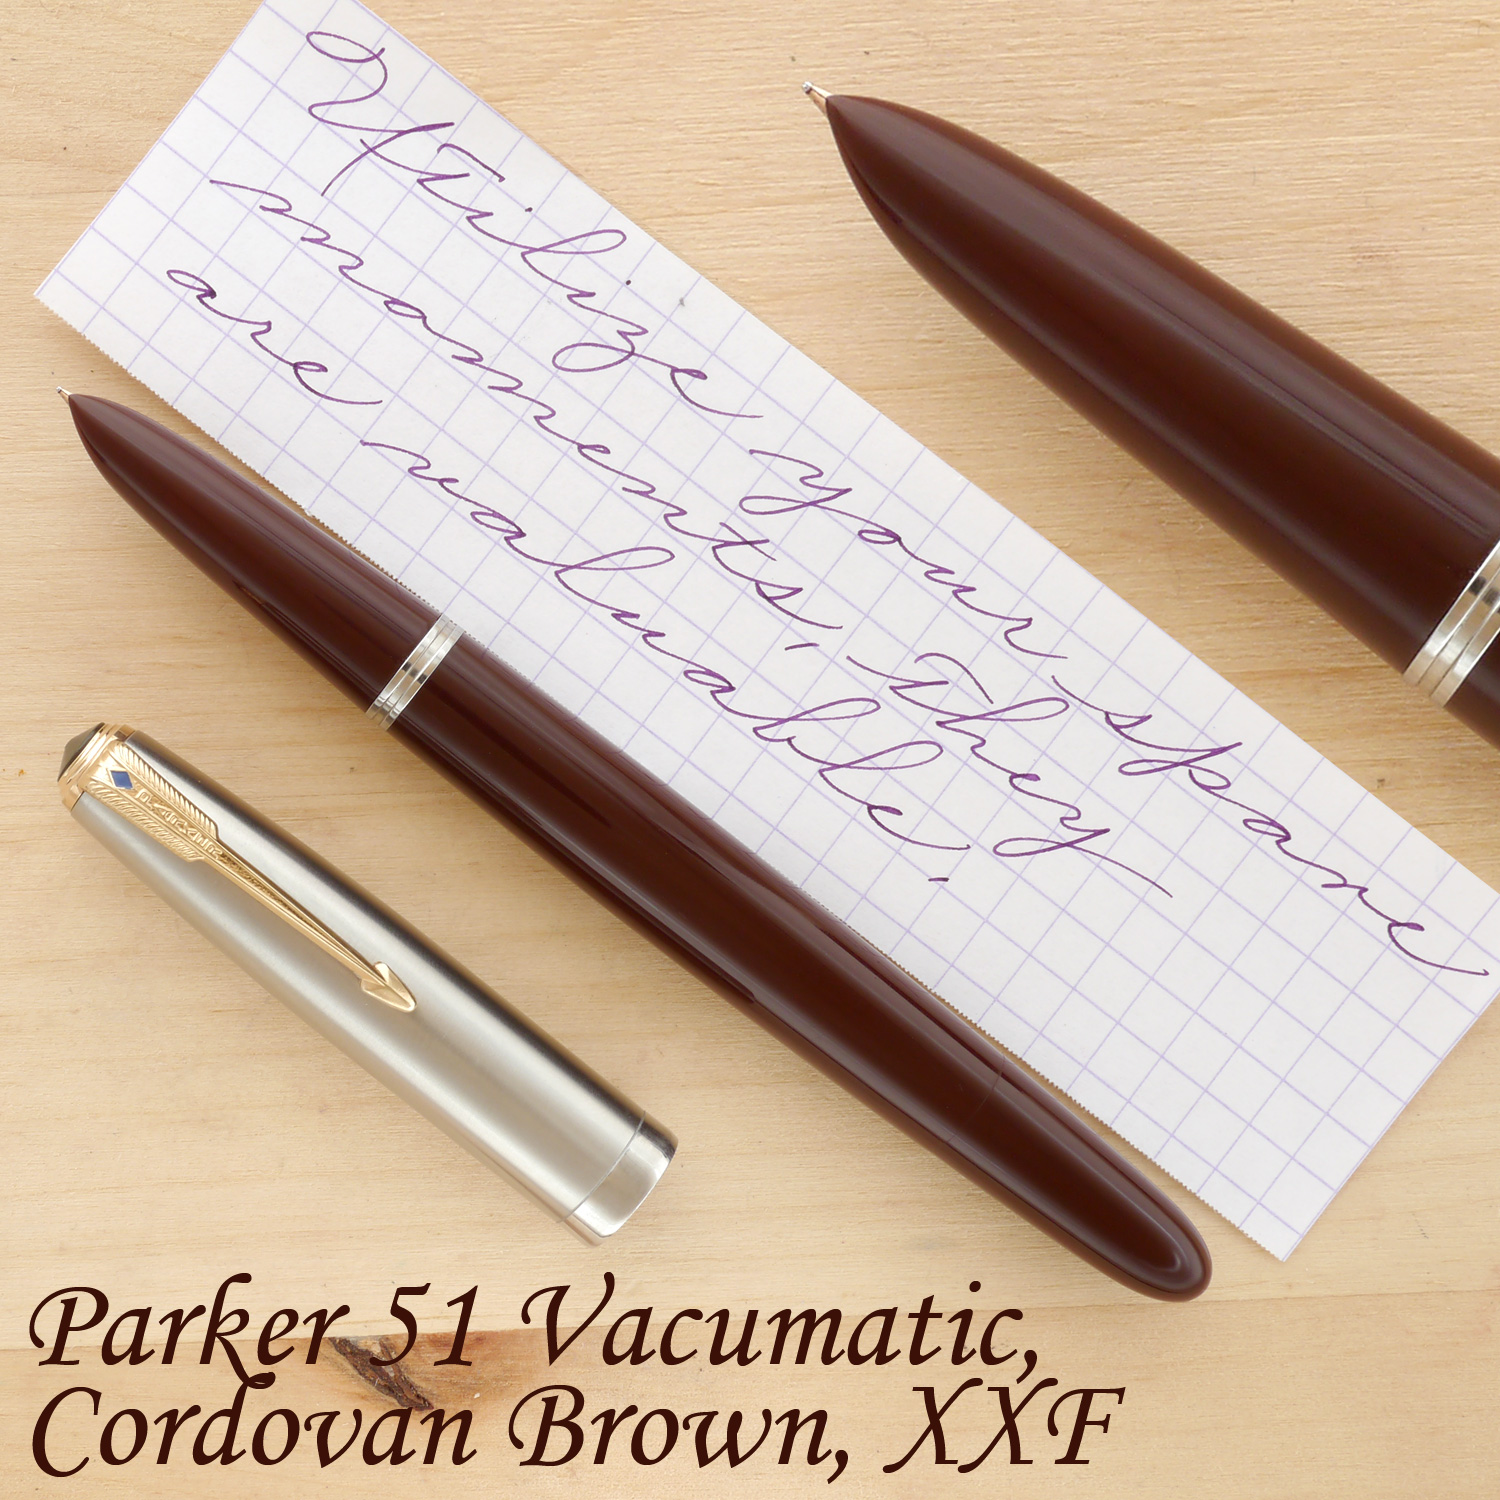 Parker 51 Vacumatic Fountain Pen in Cordovan Brown, XXF, uncapped